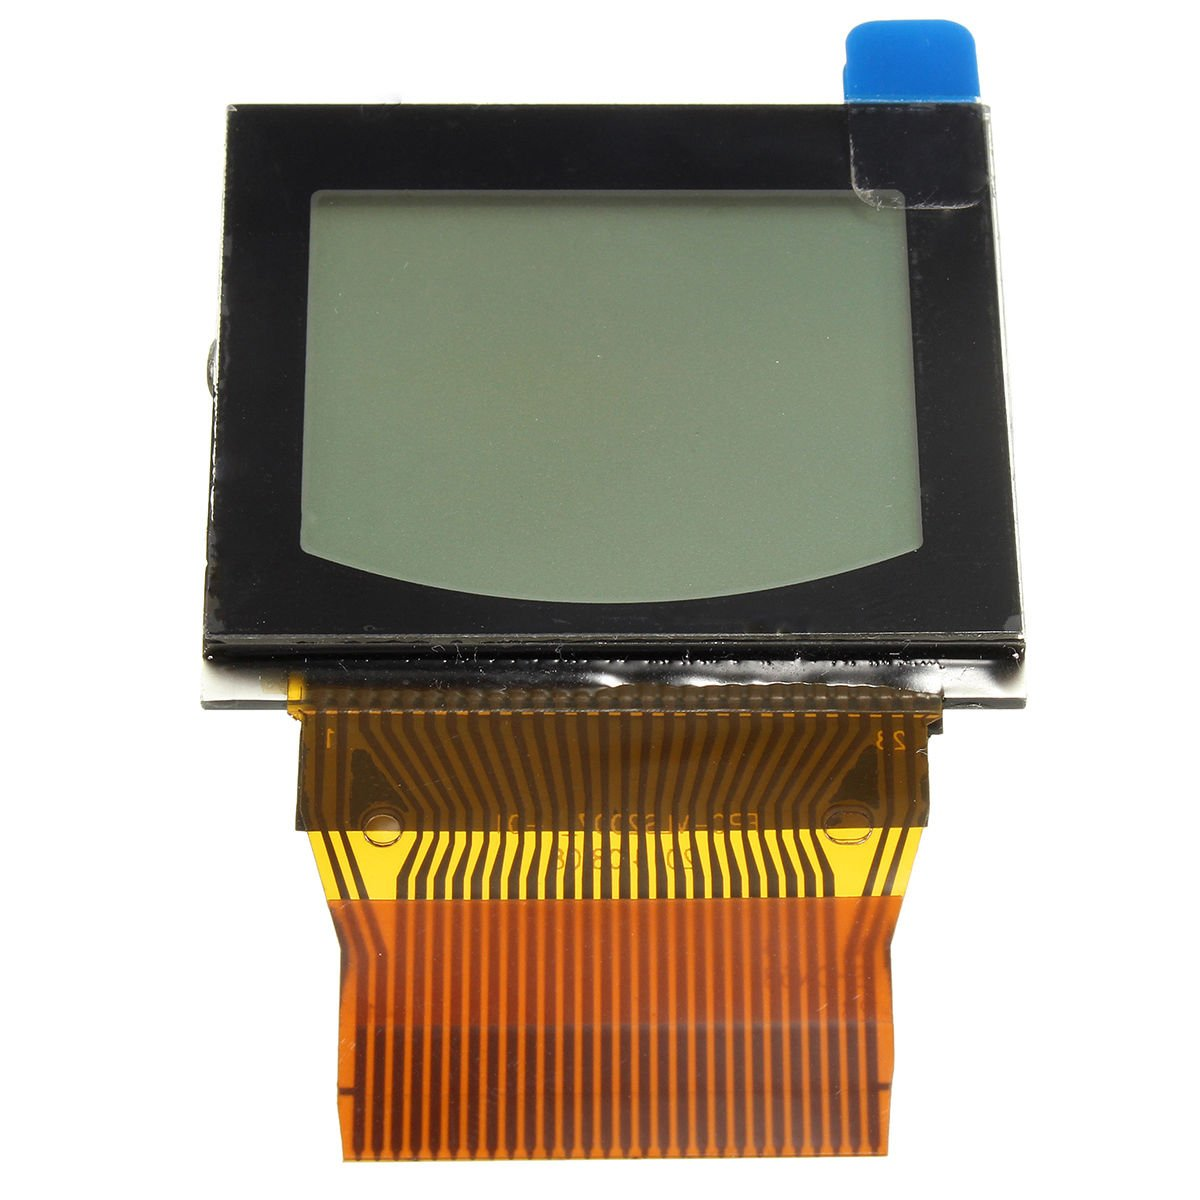 Amazon.com: LCD with Bonded Ribbon for 2004 2005 2006 Nissan Quest Speedometer Cluster: Everything Else